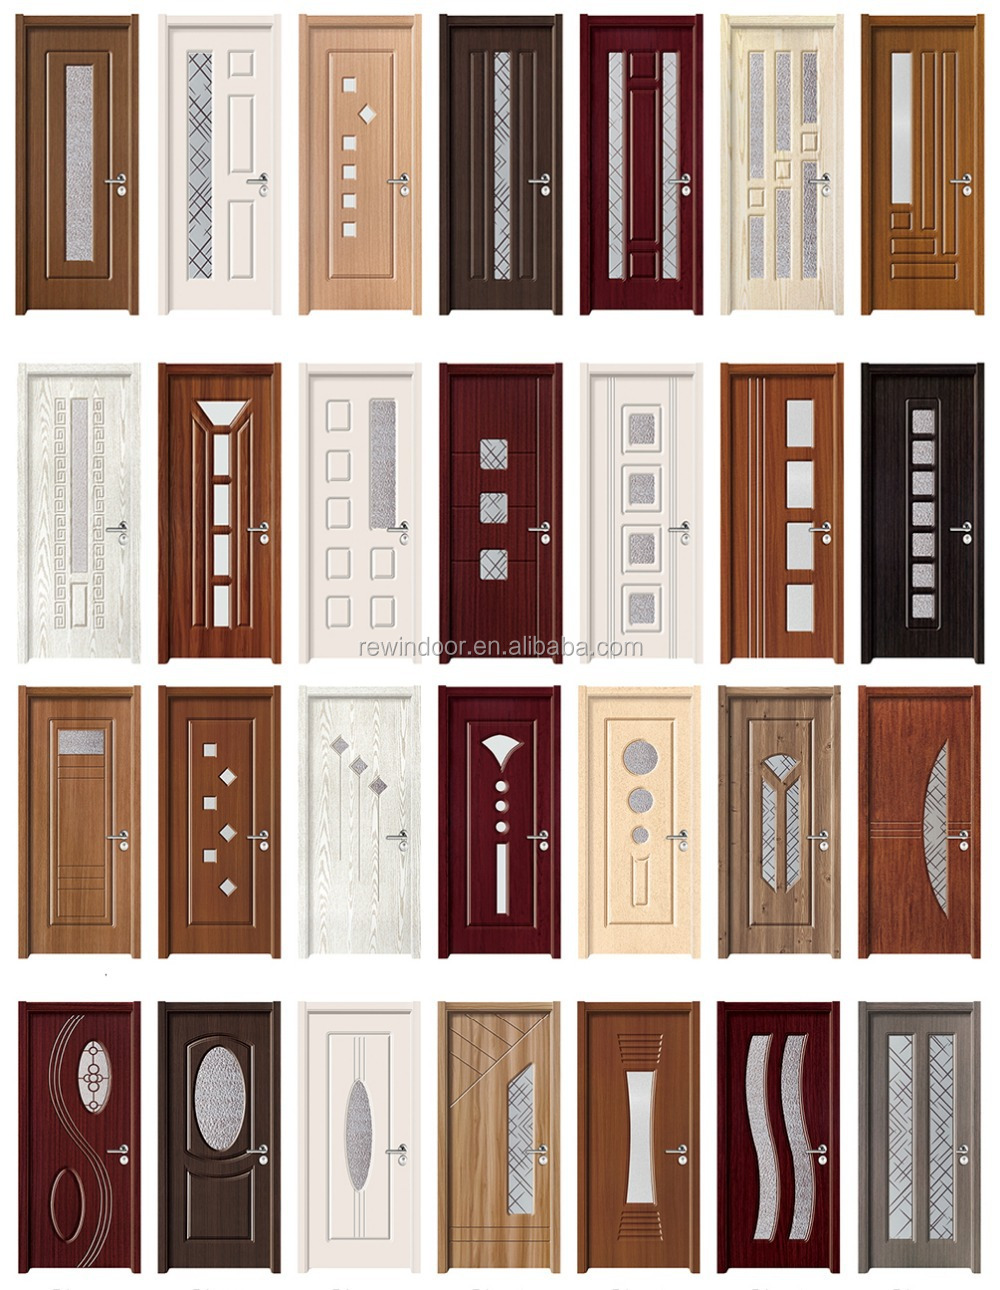 Bathroom pvc doors prices fiber bathroom door teak wood for Wood window door design